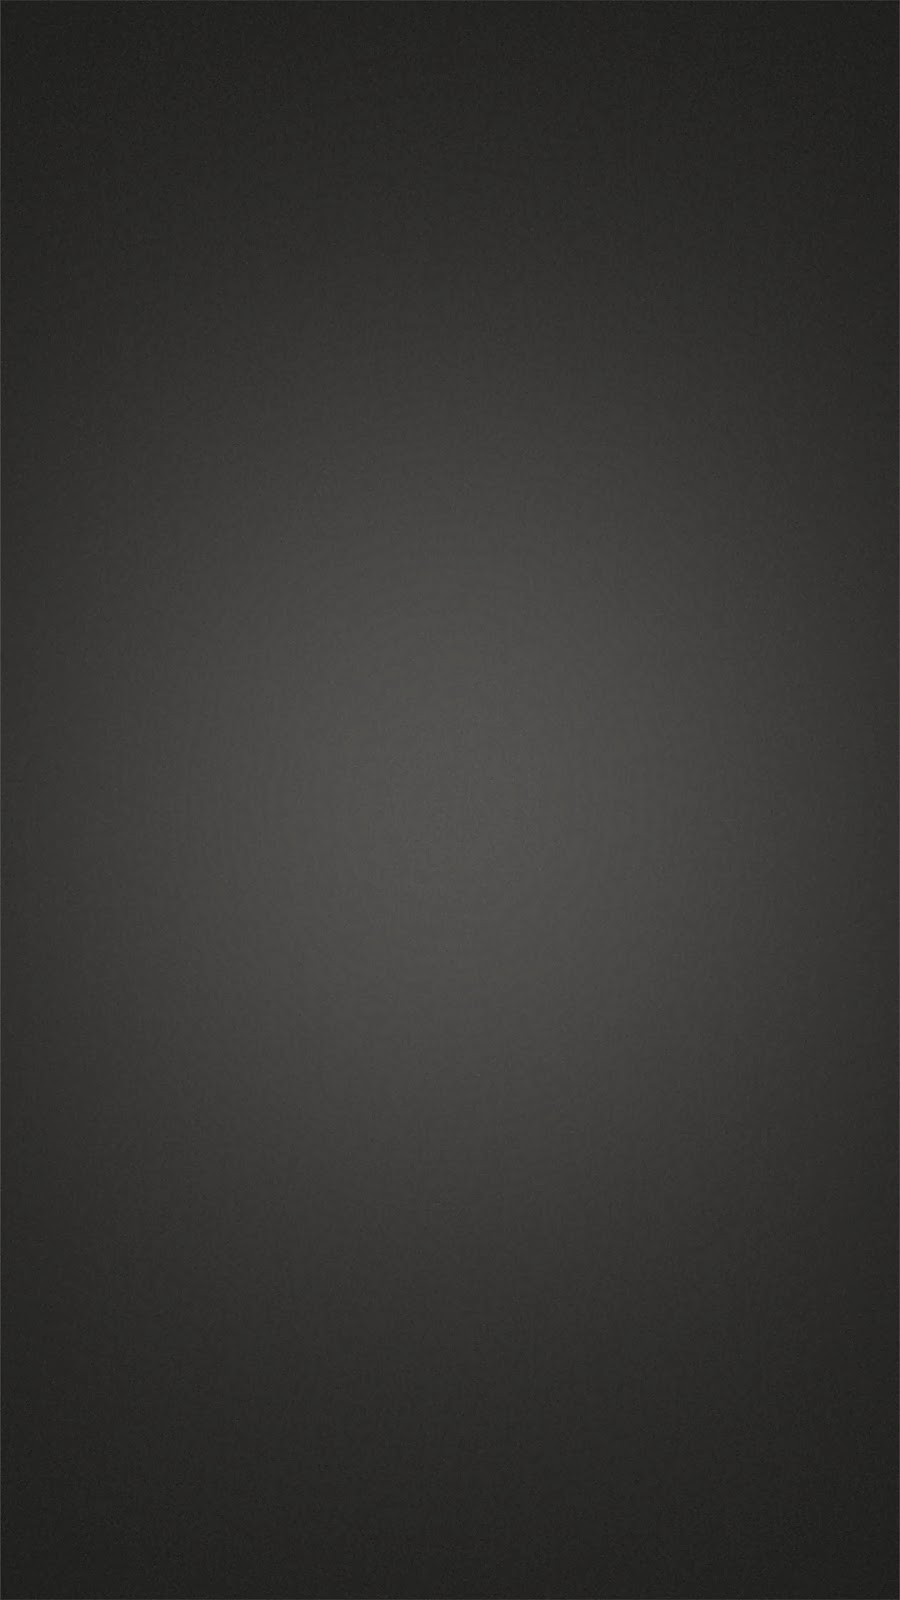 Free Android Phone Black Wallpapers Wallpaper